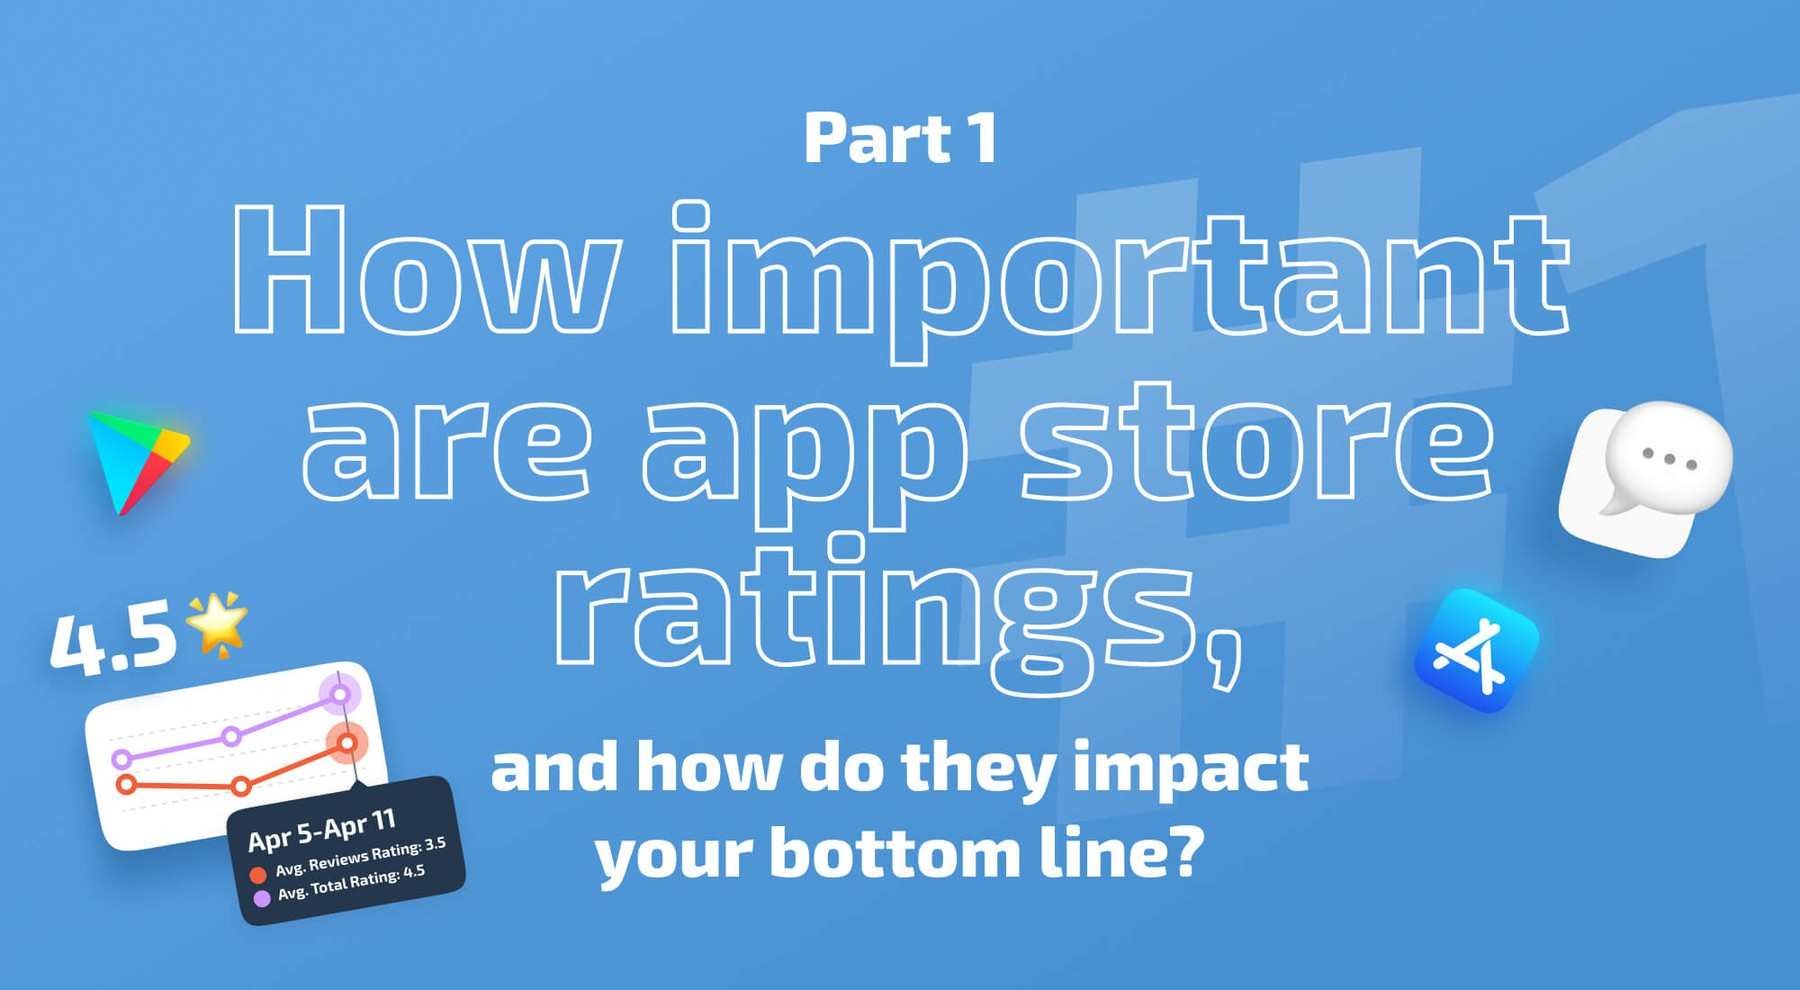 How important are app store ratings, and how do they impact your bottom line?